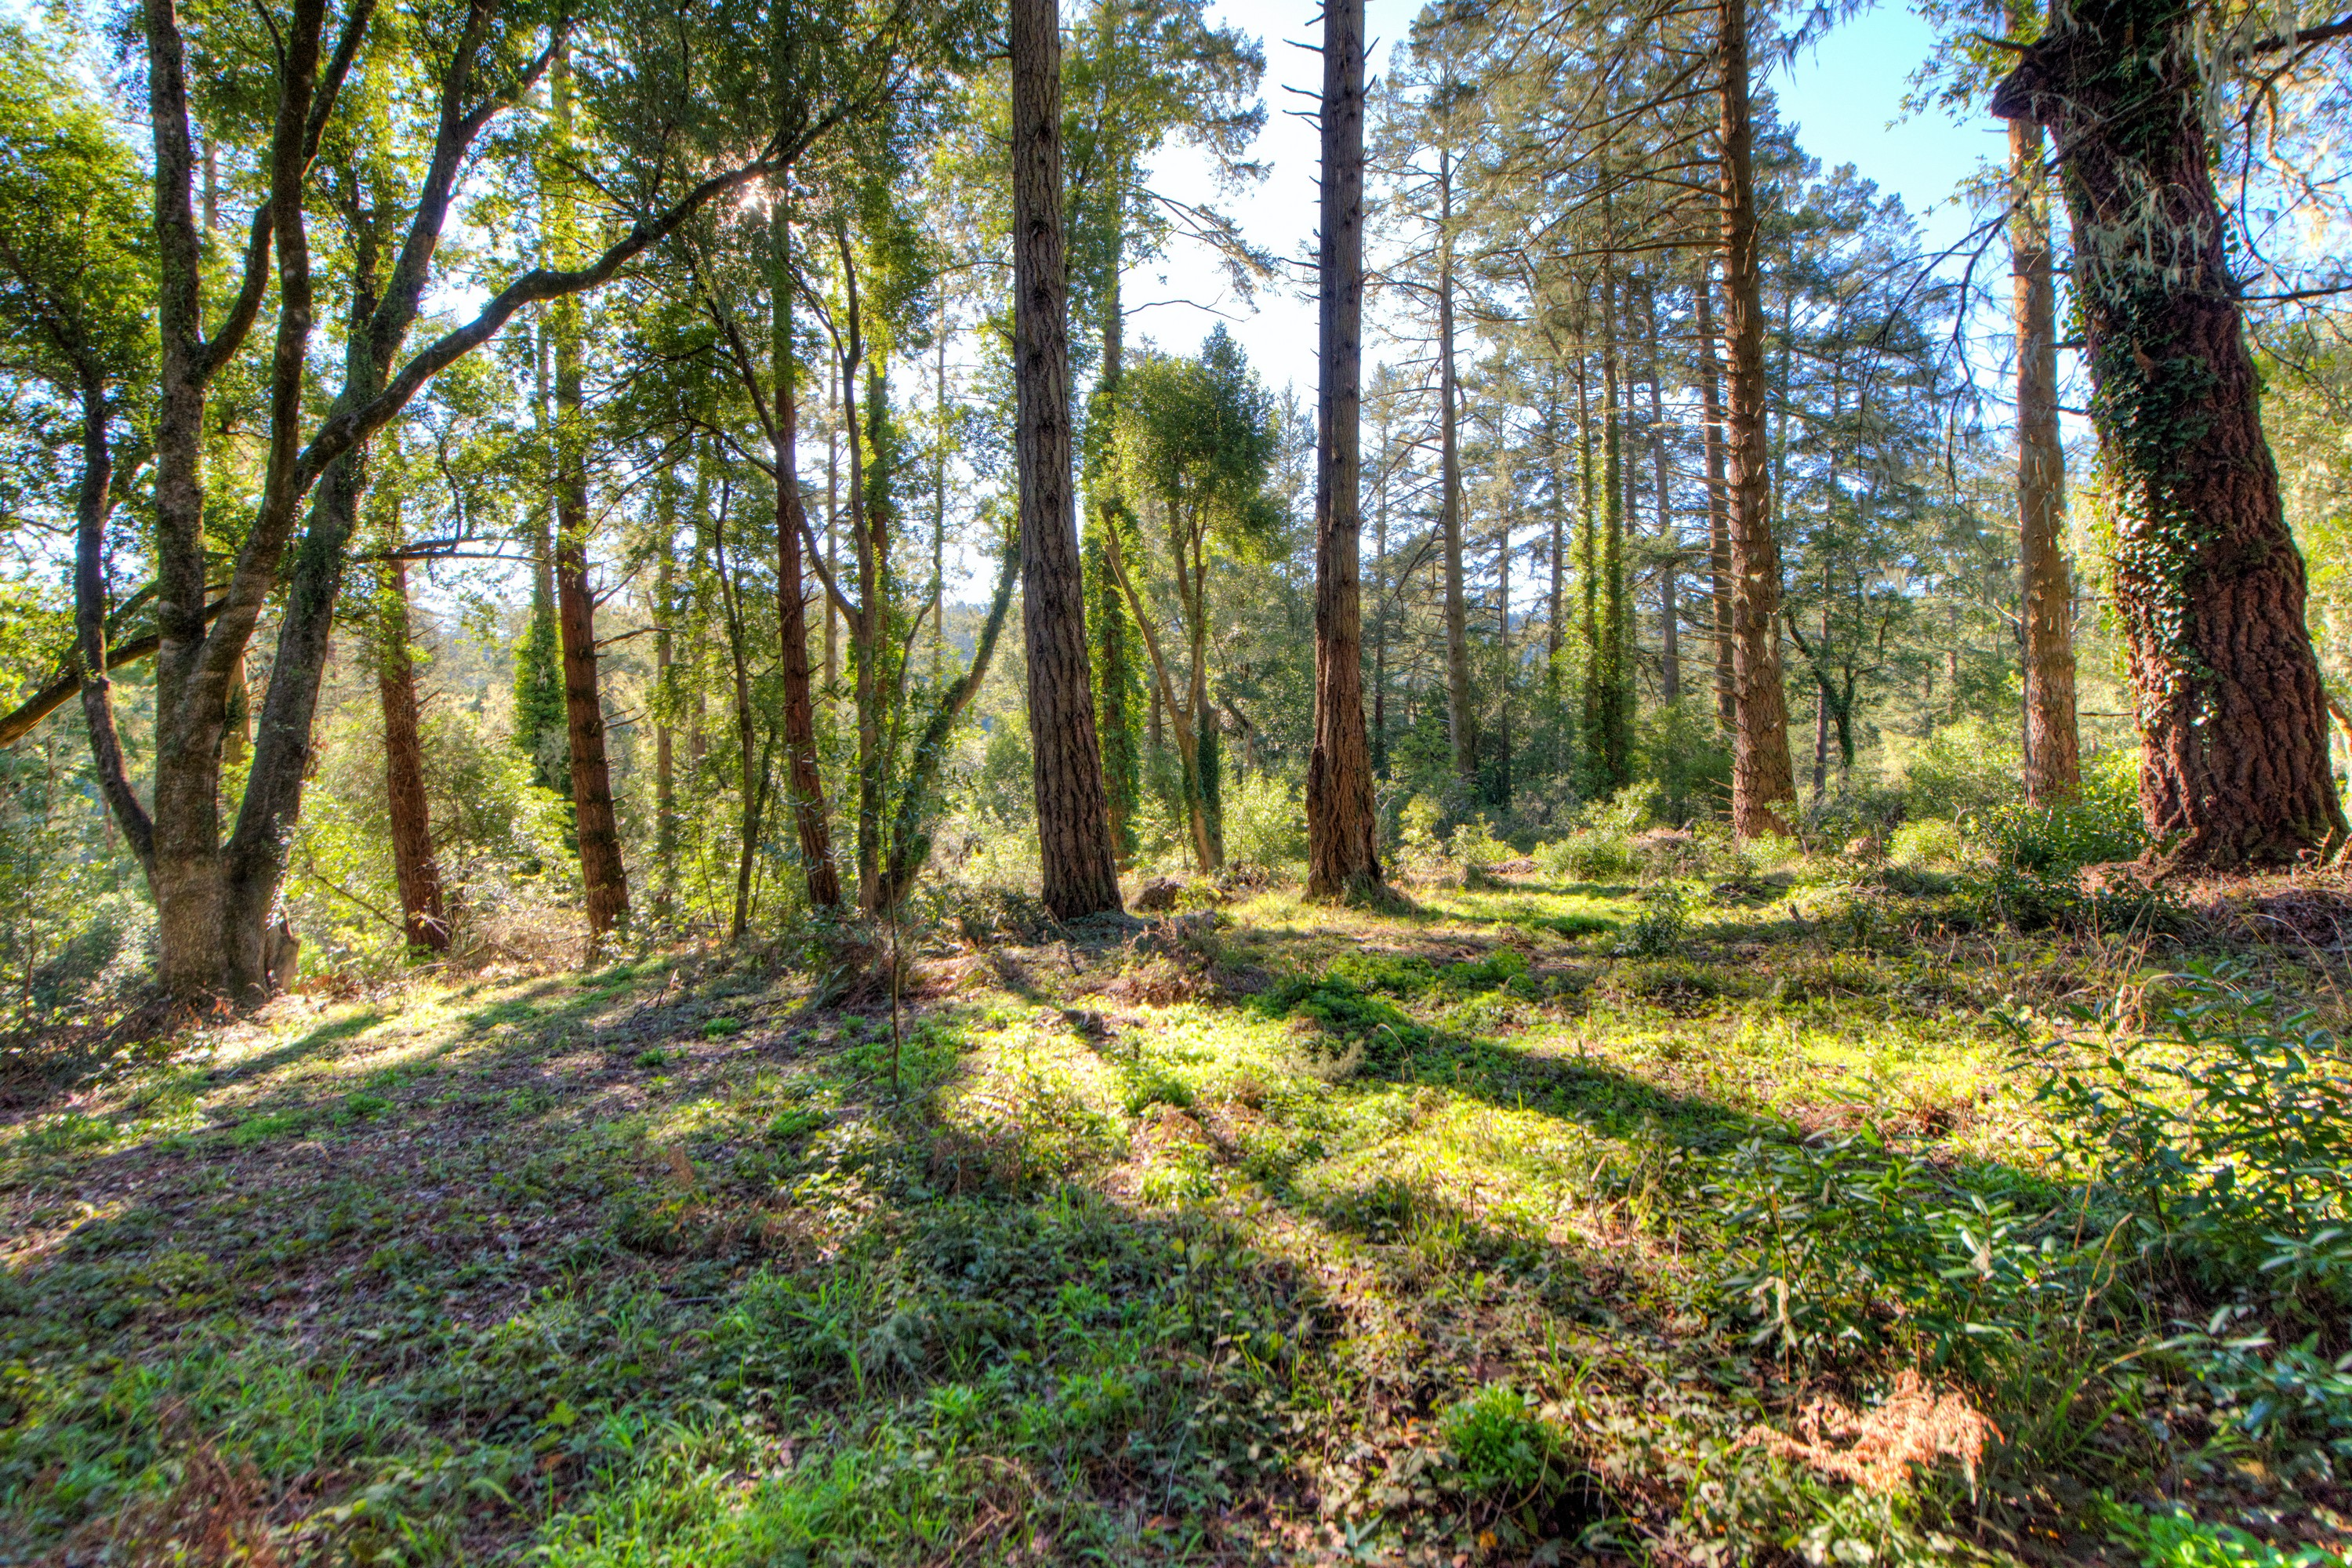 Land for Sale at Two Sunny Level Lots 137 - 141 Laurel Street Point Reyes Station, California, 94956 United States